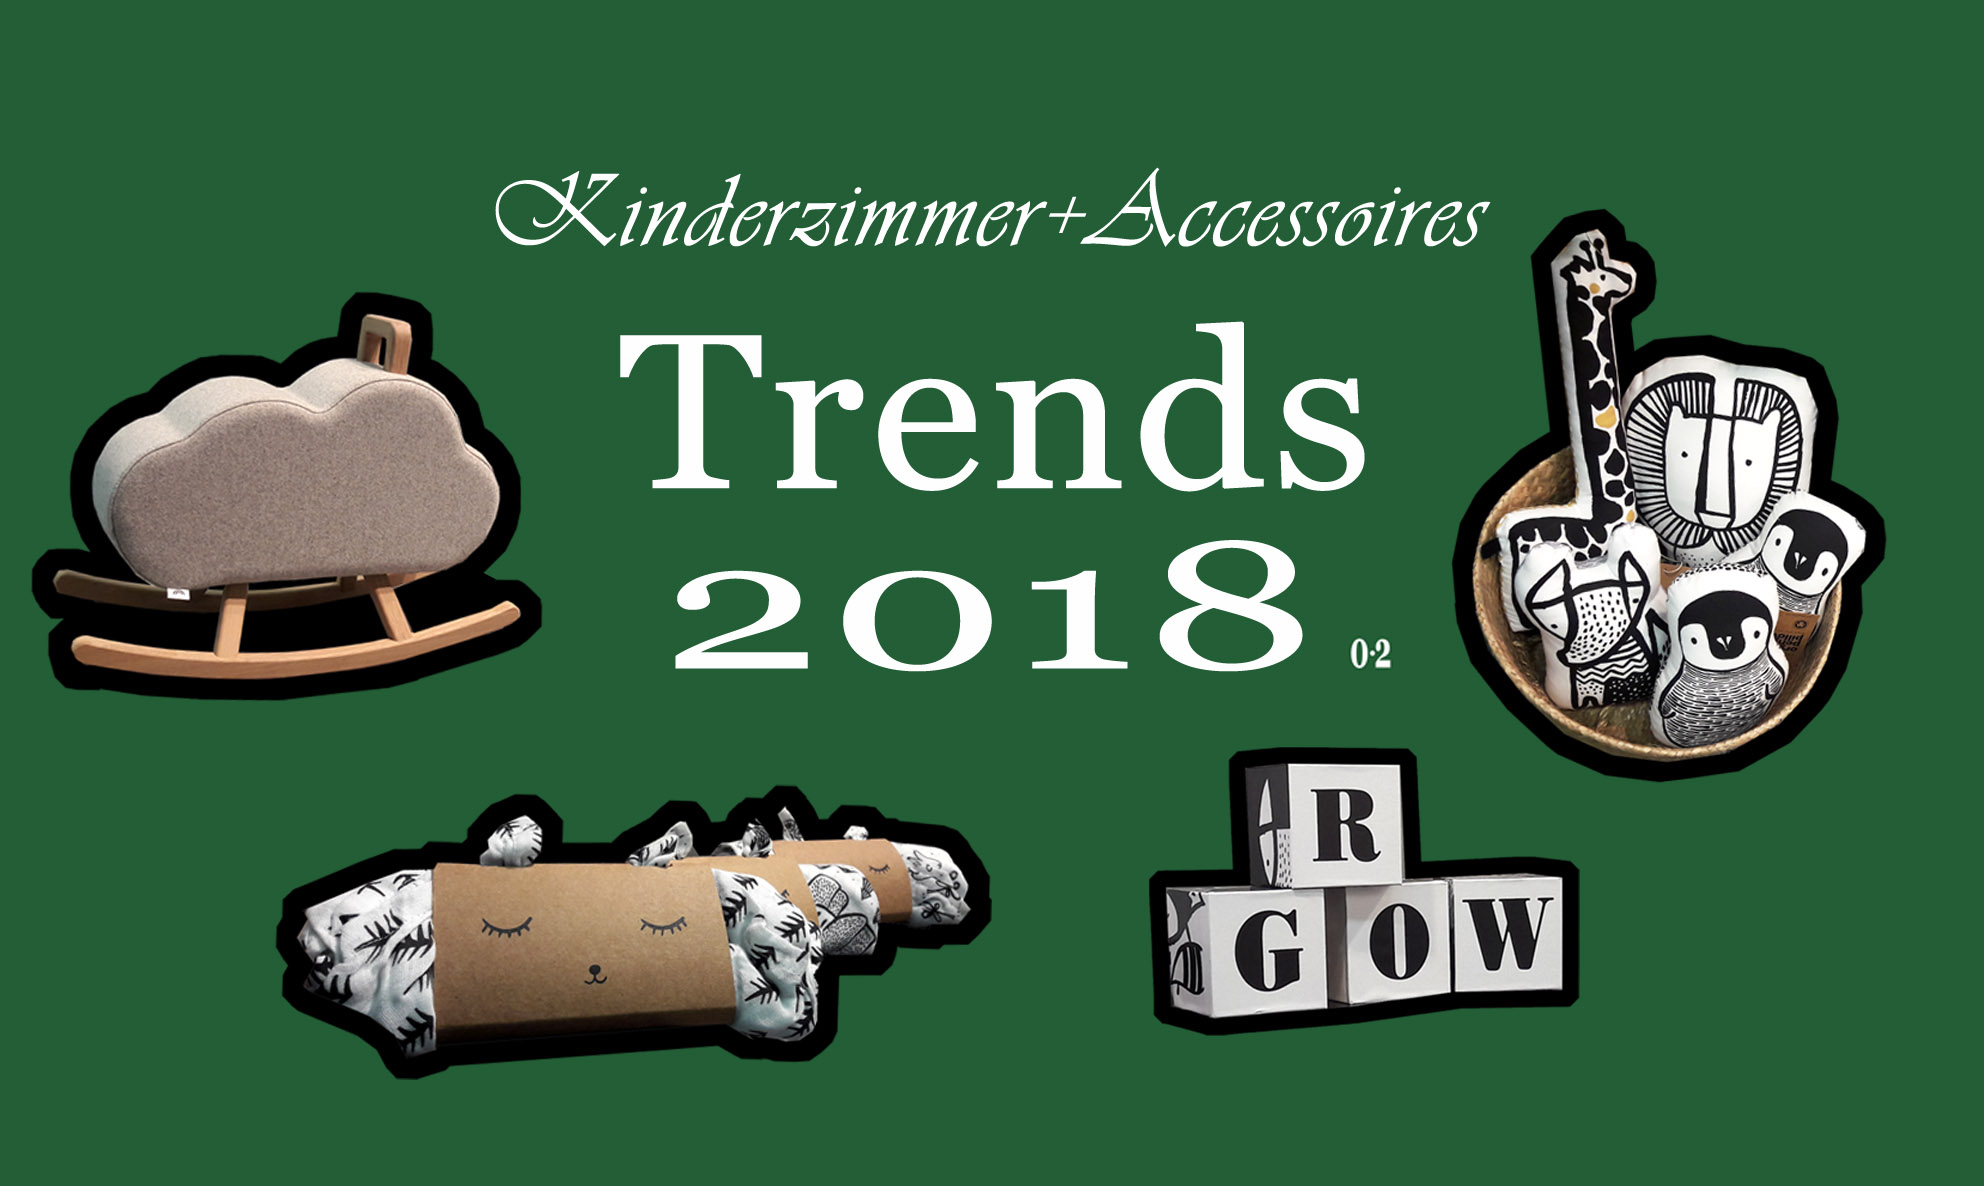 Kinderzimmer accessoires meine trends f r 2018 for Kinderzimmer 2018